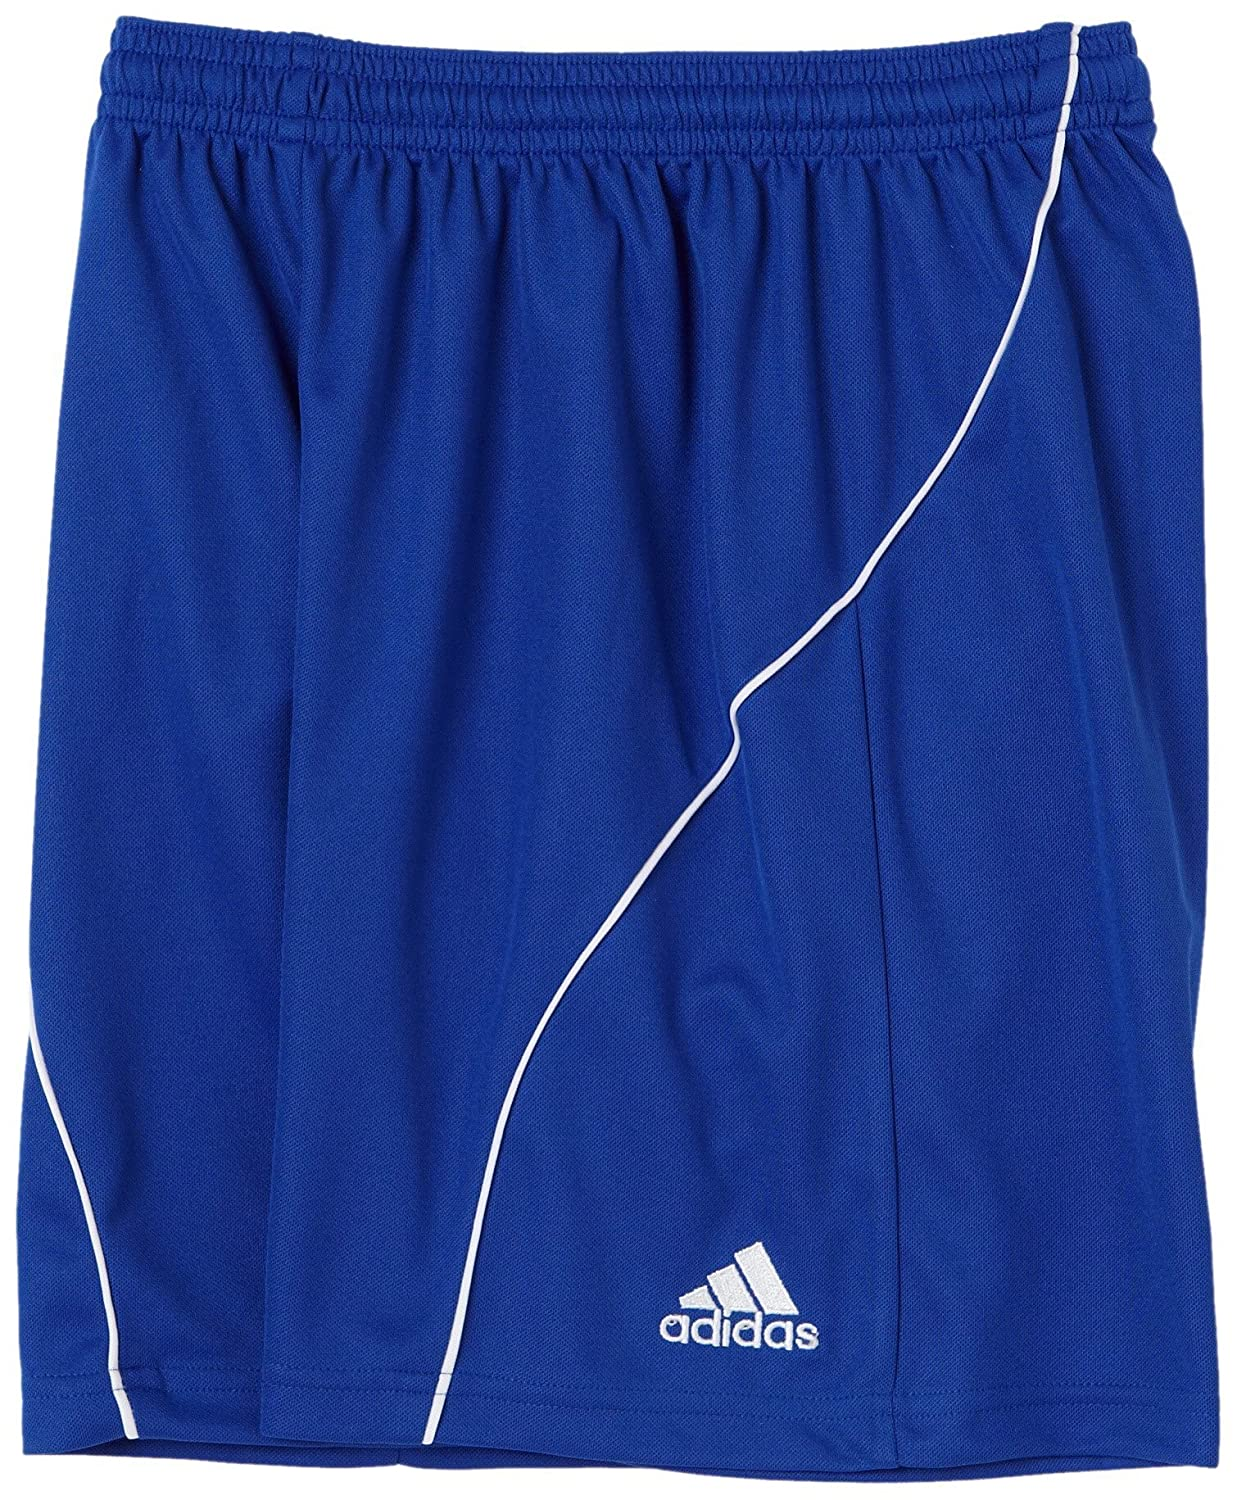 Adidas- Striker Shorts Youth XS